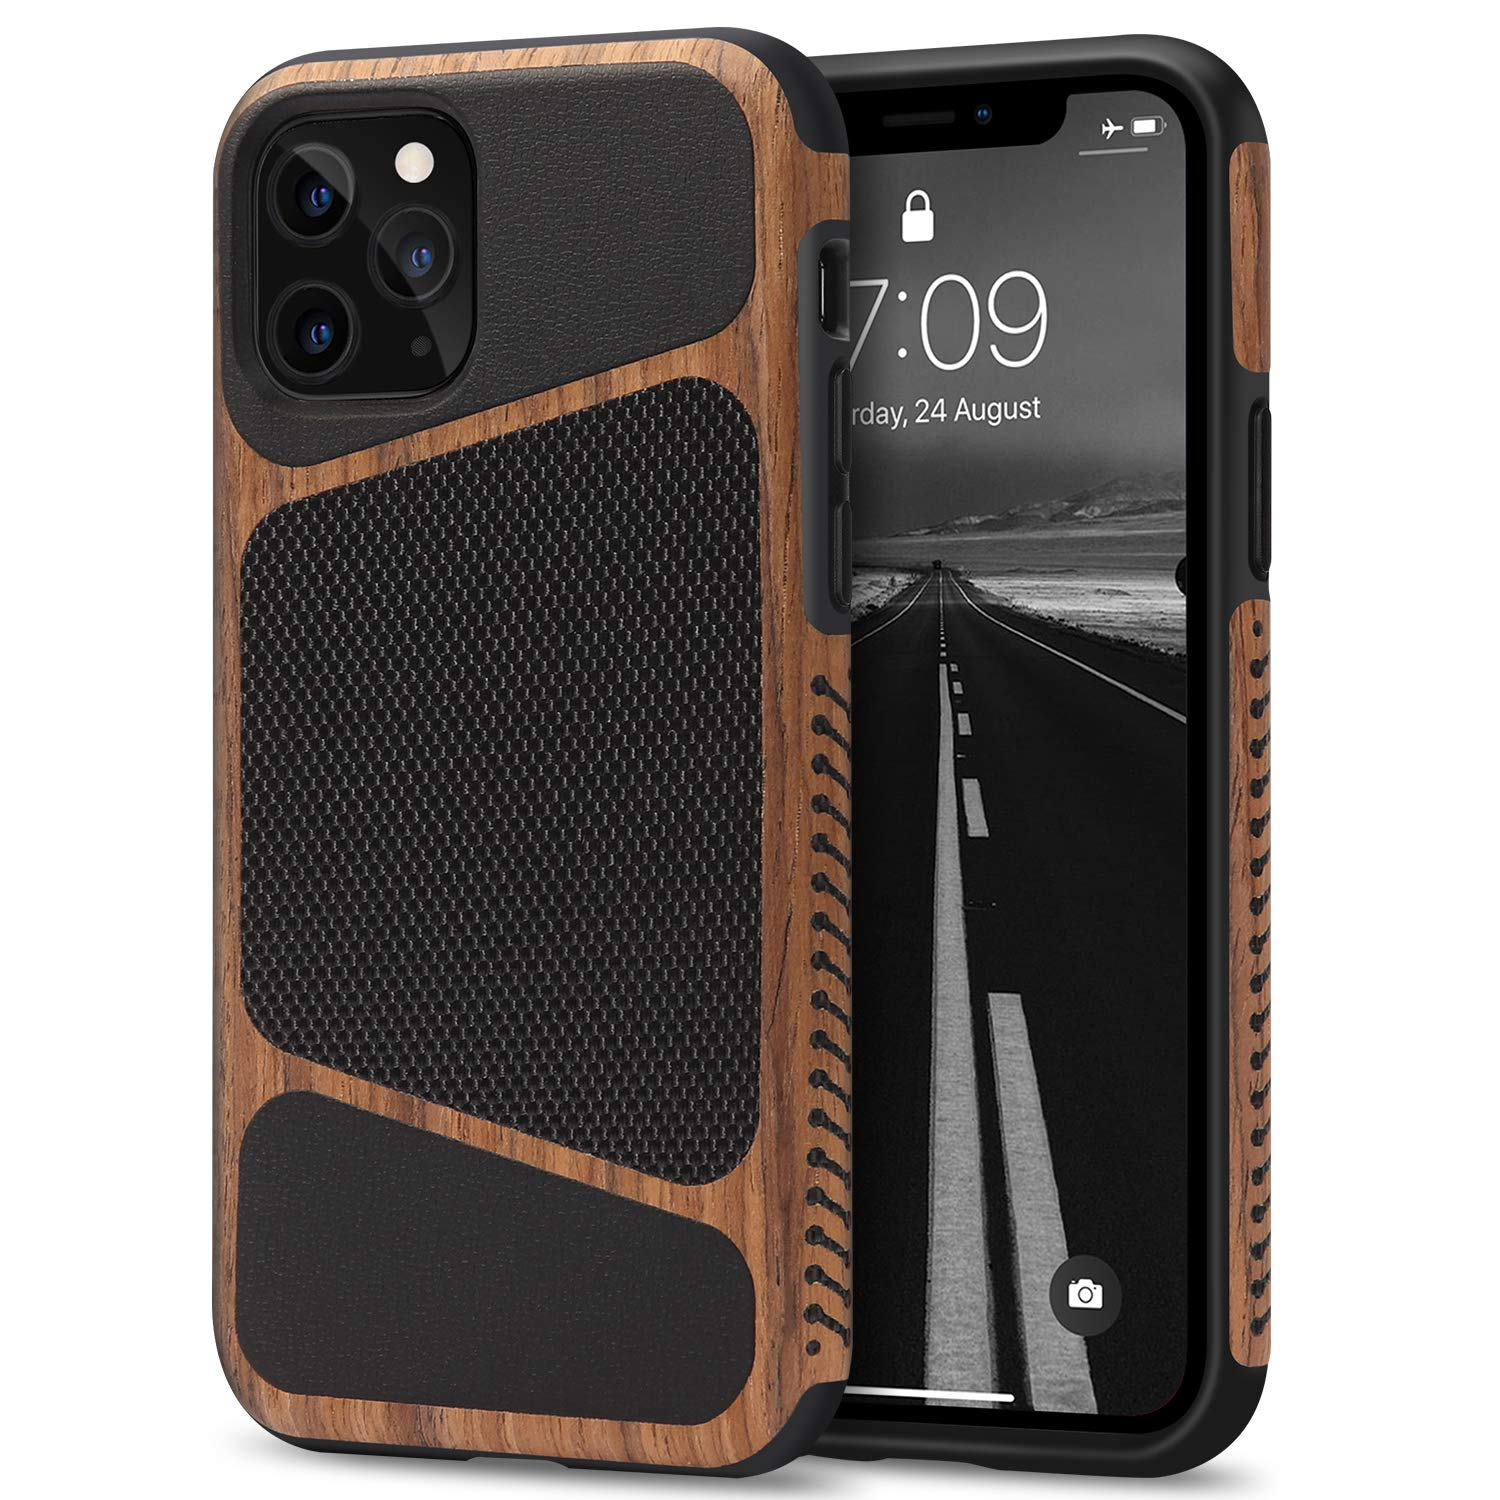 Tasikar Compatible with iPhone 11 Pro Max Case Easy Grip Wood Grain with Nylon Fabric Leather Design Compatible with iPhone 11 Pro Max